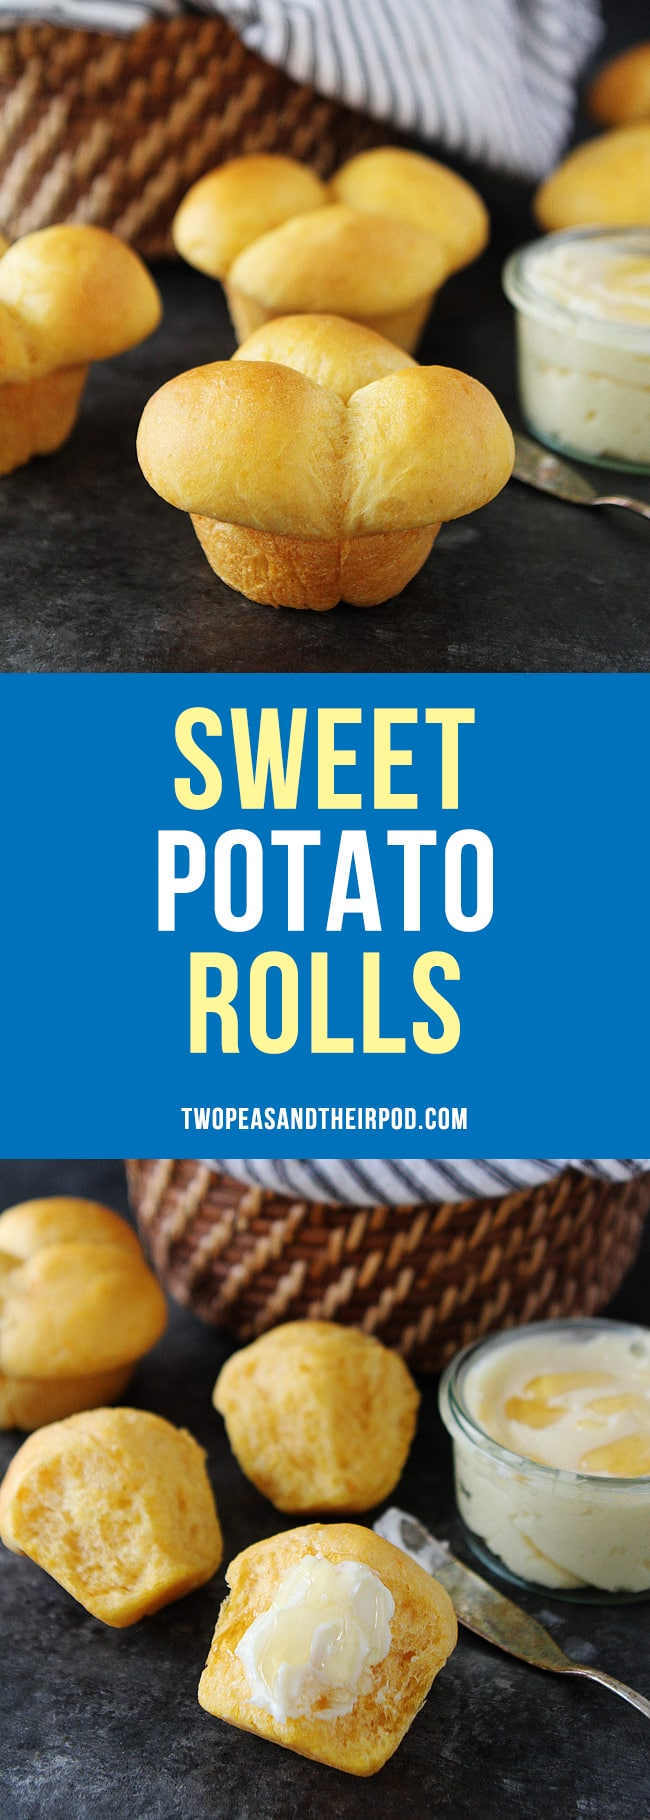 Sweet Potato Rolls are the perfect dinner rolls for Thanksgiving or for any meal! #rolls #sweetpotato #Thanksgiving